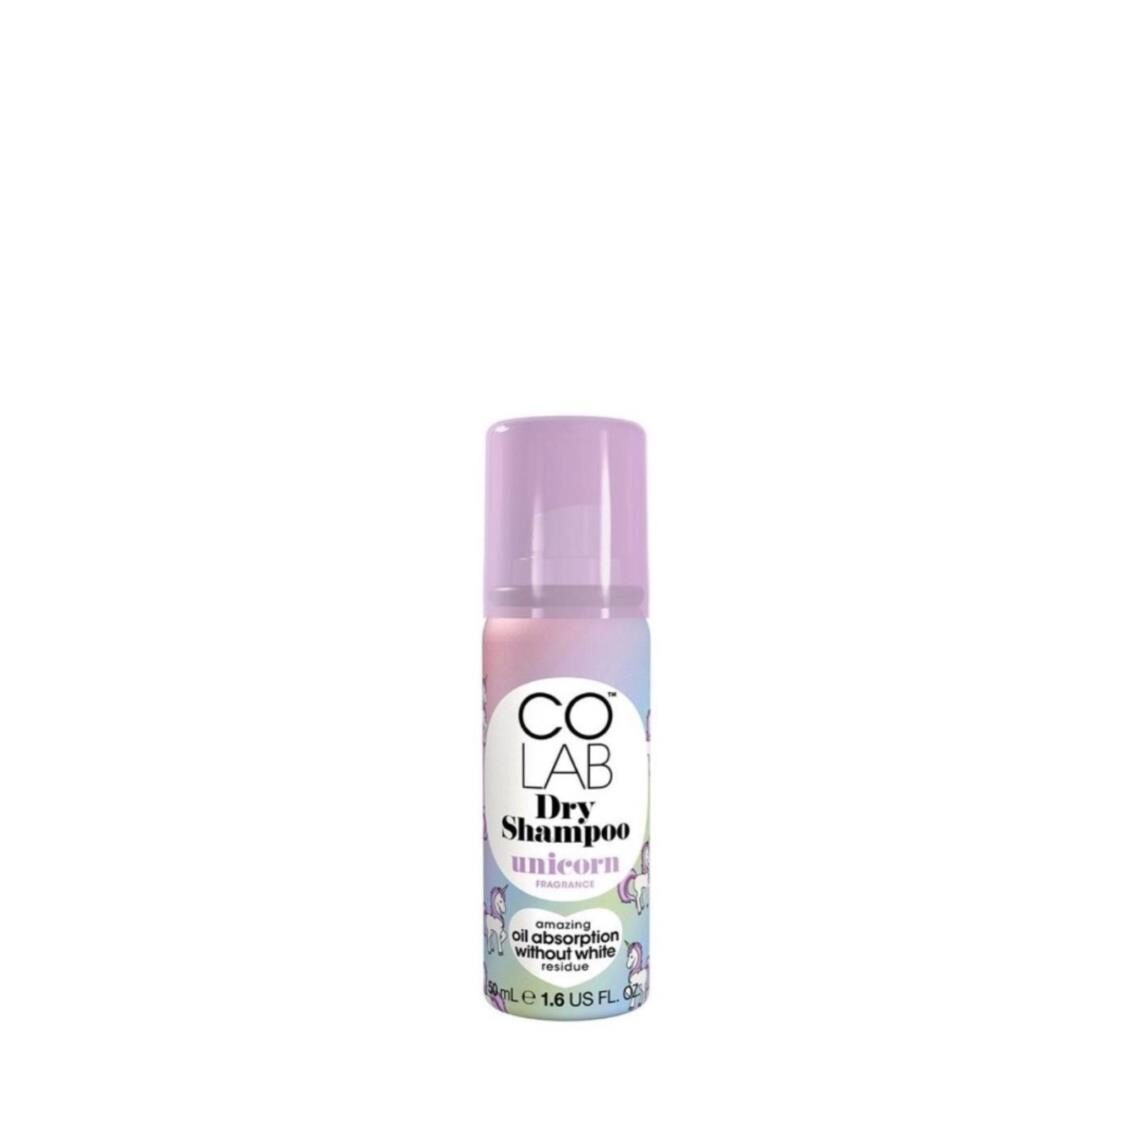 Colab Dry Shampoo Unicorn 50ml